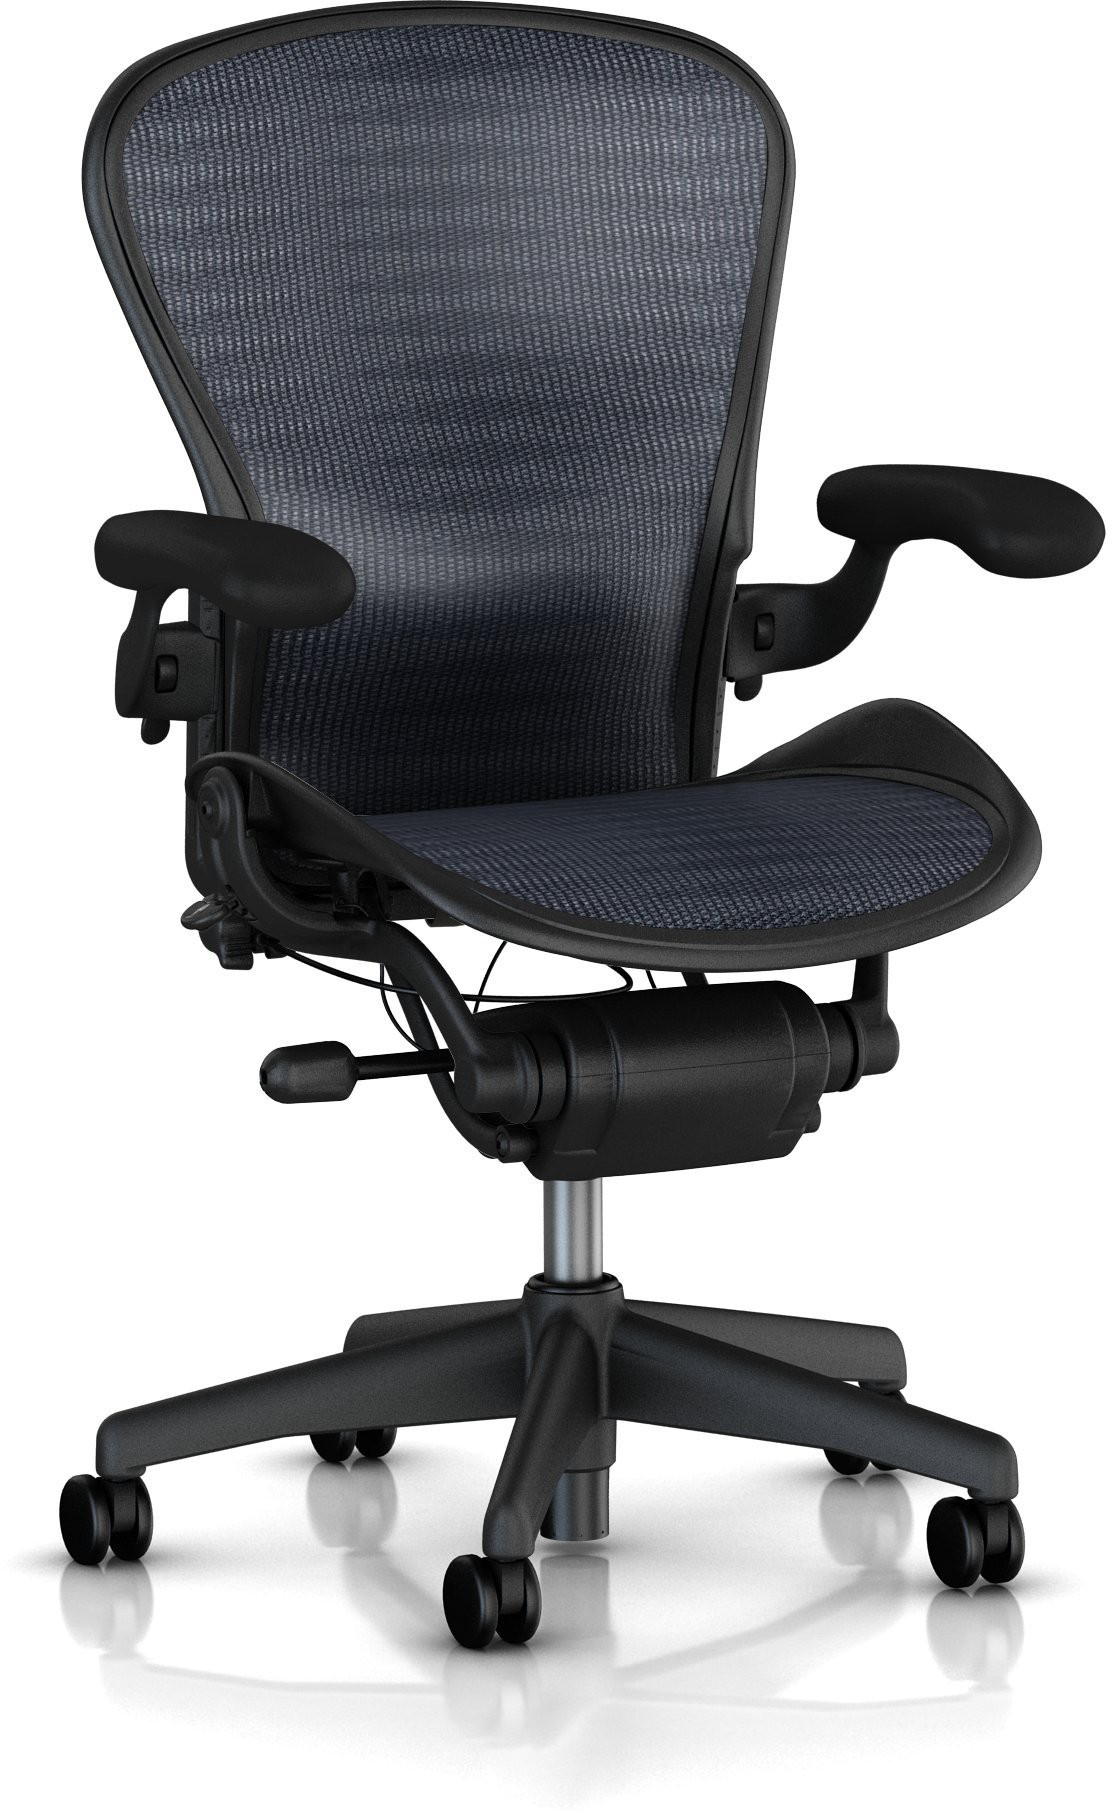 View HermanMiller Aeron - Tuxedo Blue Black Pellicle : Graphite base : Pellicle Backrest and Seat NA Office Chair(Black) Furniture (HermanMiller)